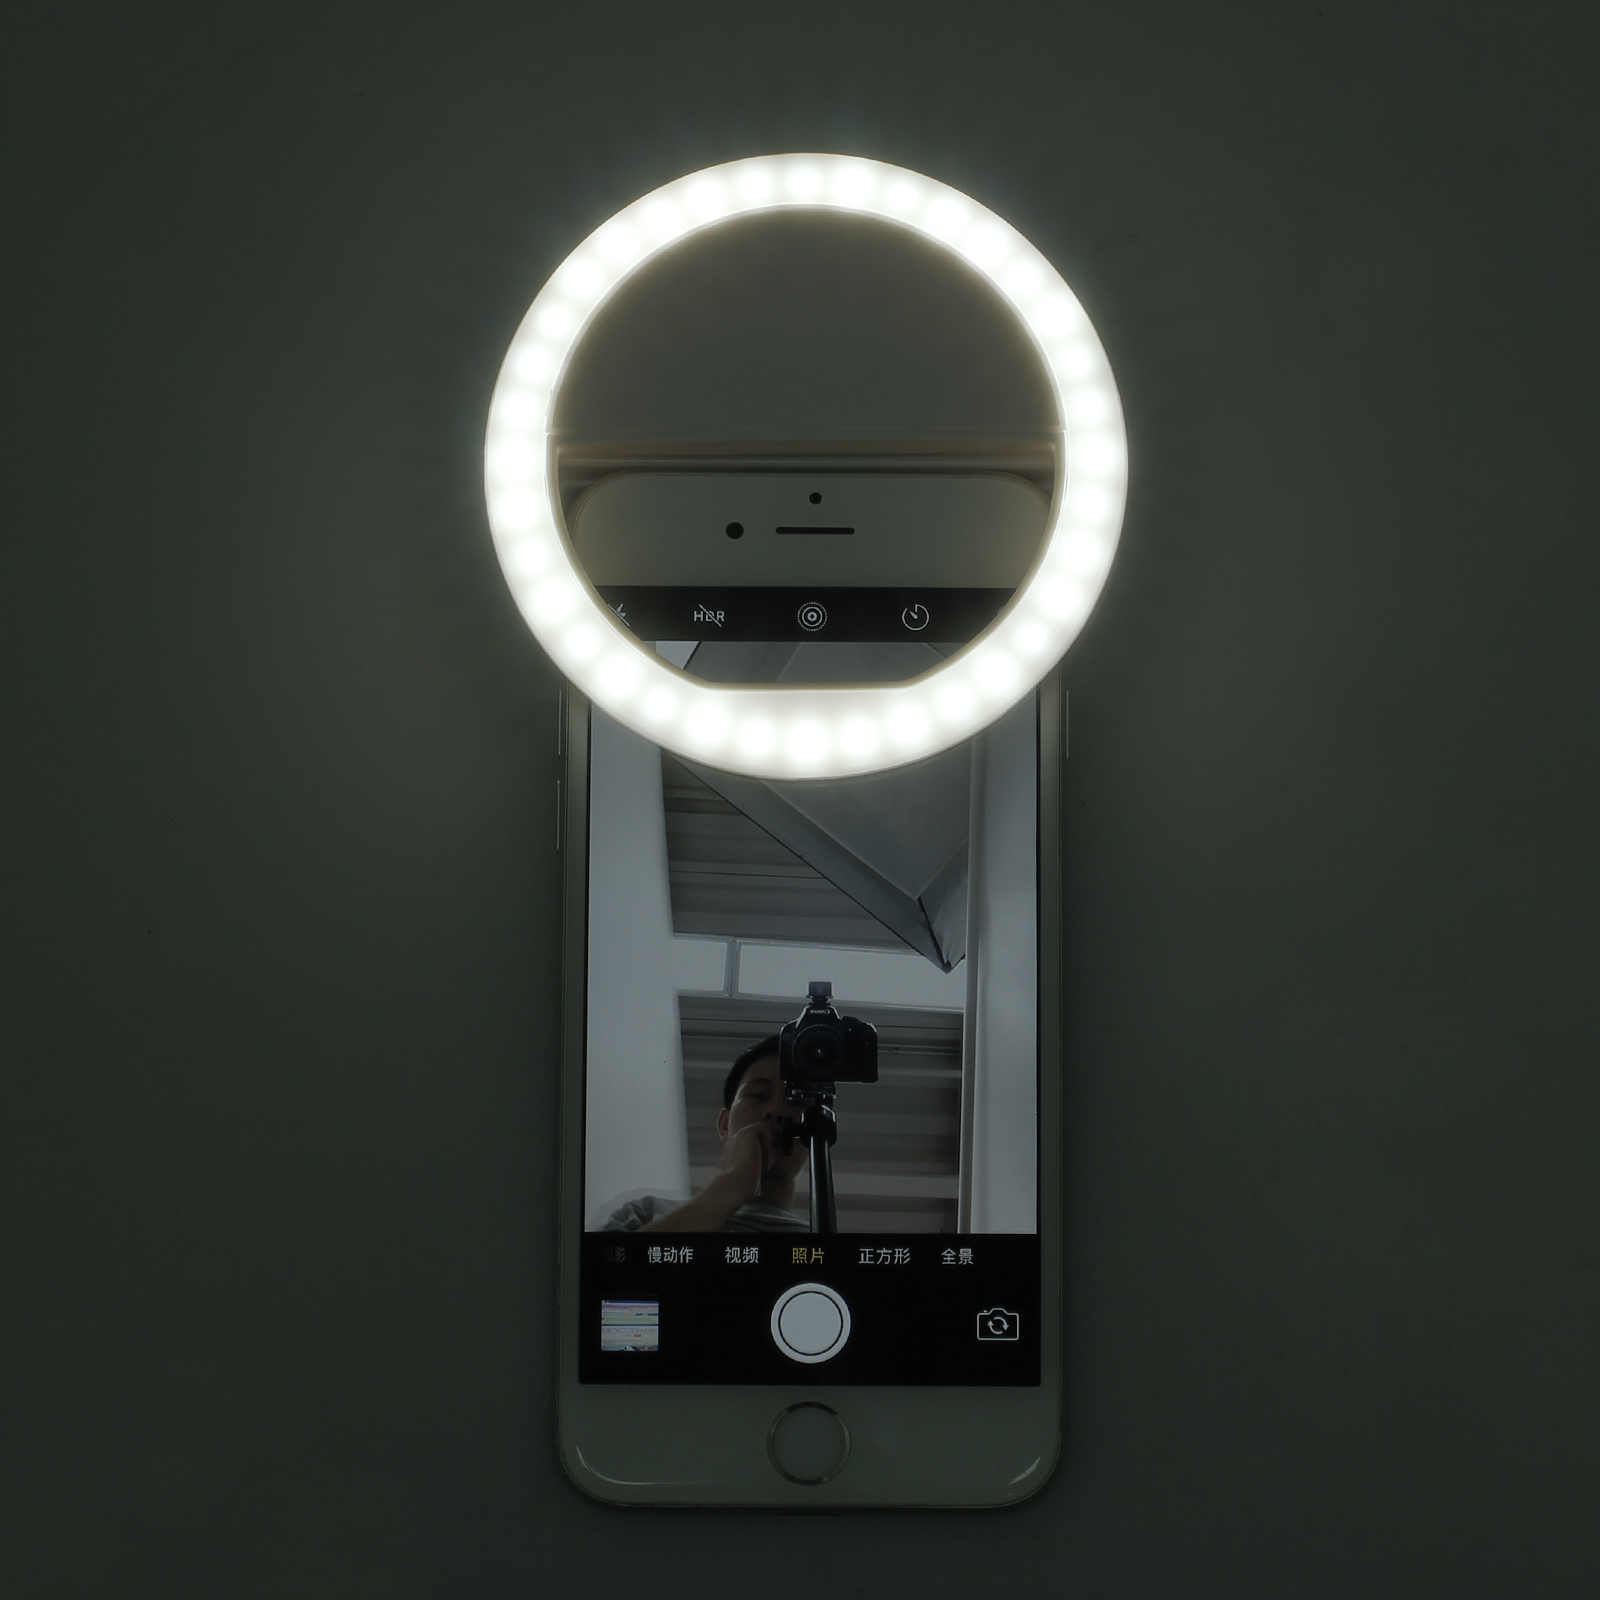 Led Lighting For Camera Phones Tablet Full Hd Do 500 Zl Smonet Wireless Hd Camera Cctv Security Kit Hd Tv Shows Stream: Selfie Flash LED Phone Camera Photography Ring Light For